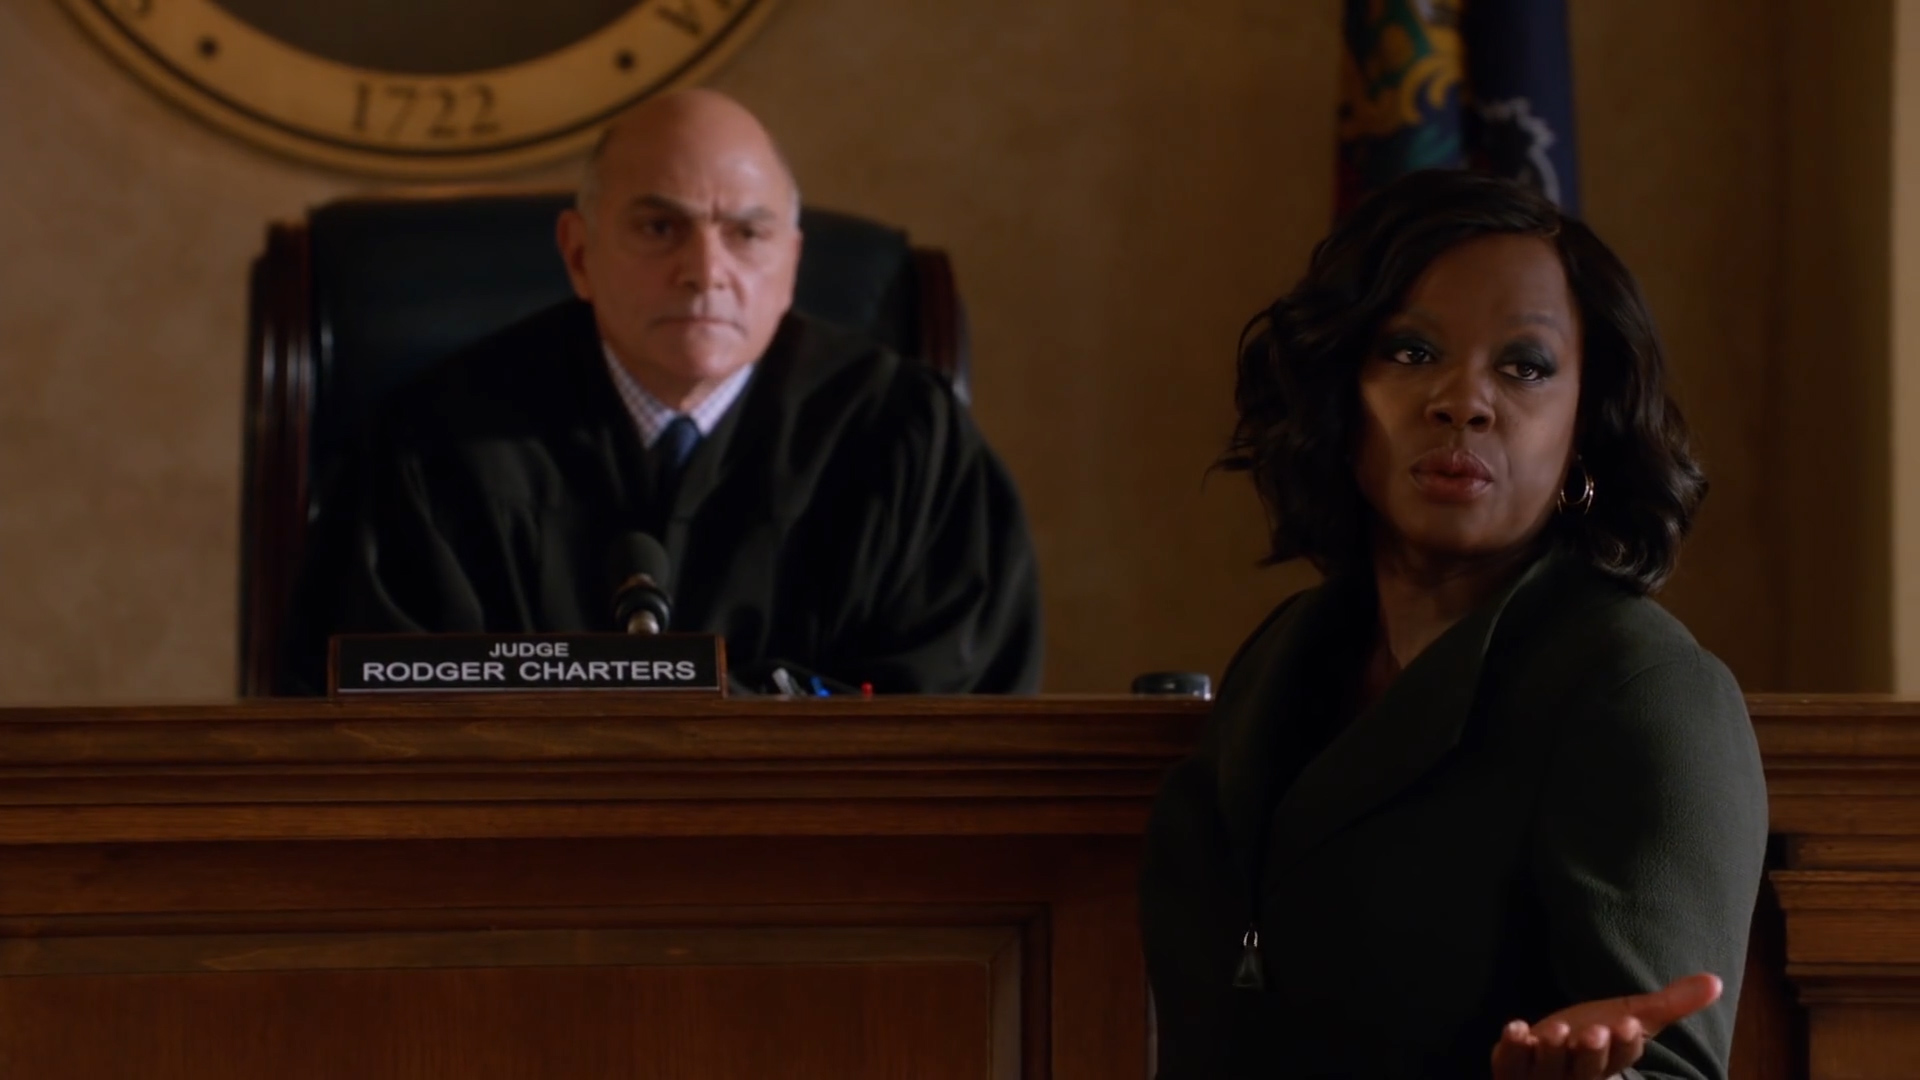 How To Get Away With Murder - Season 3 Episode 3